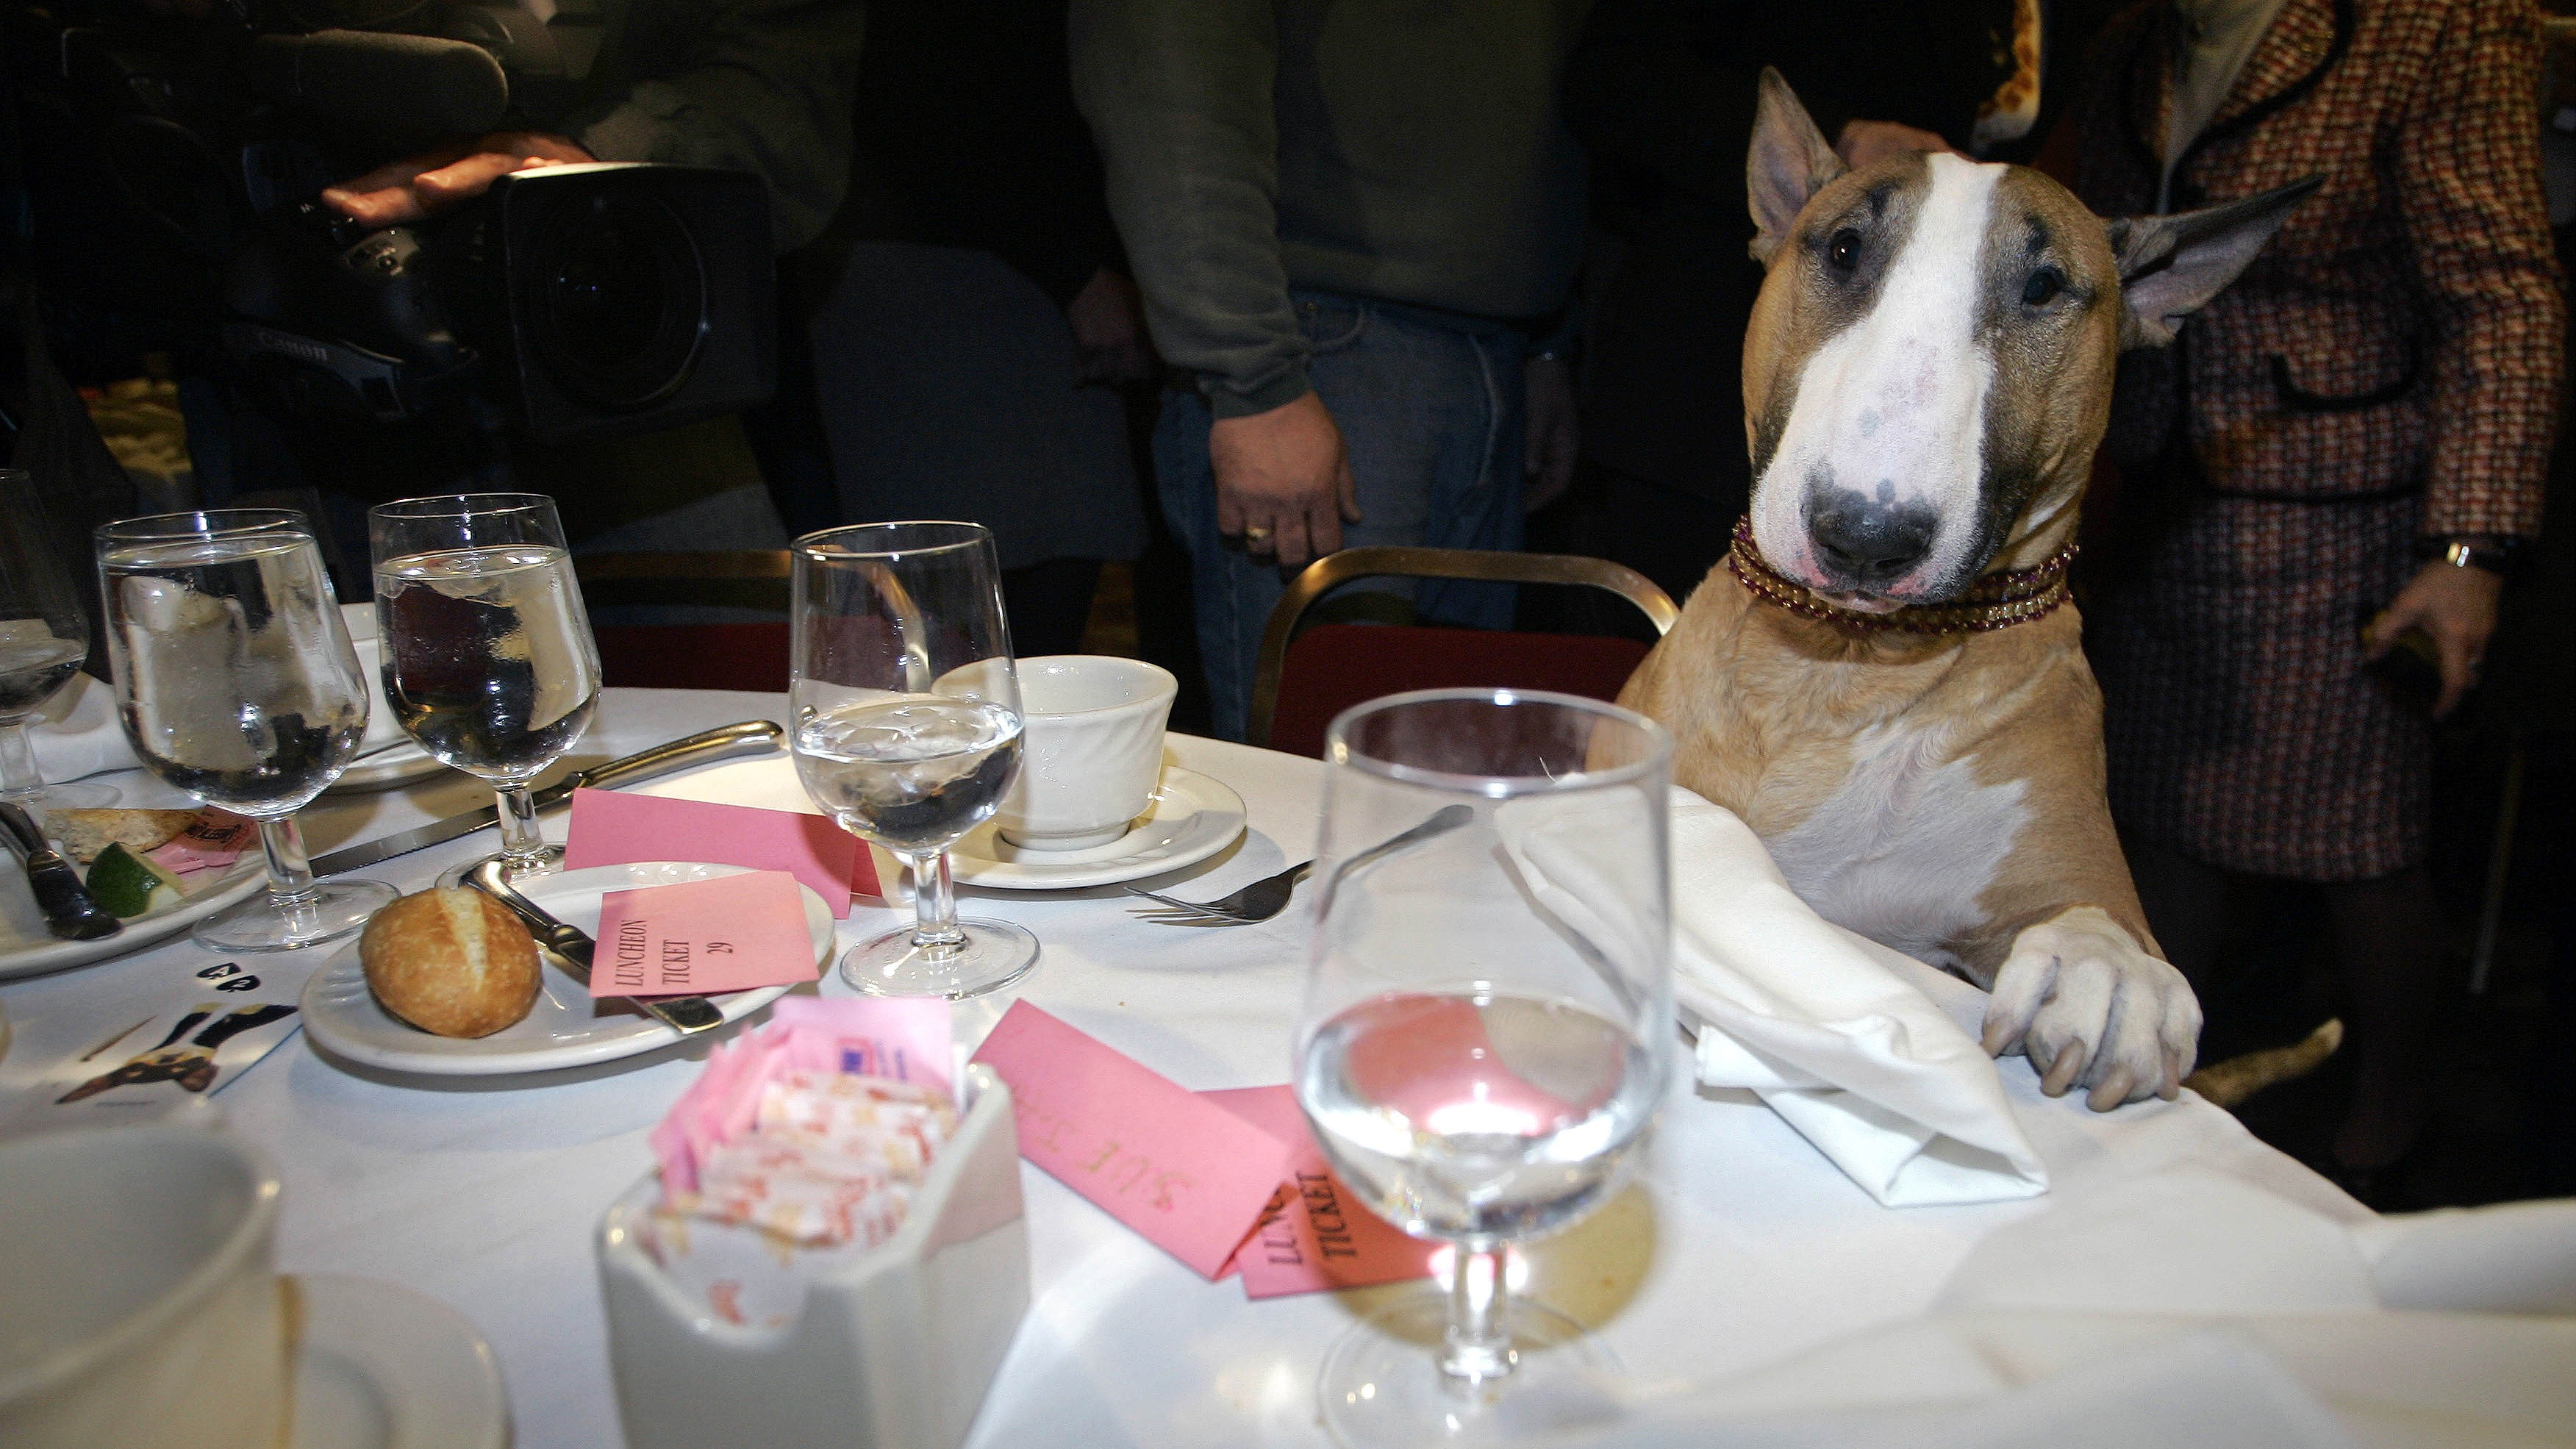 Rufus, a tan-and-white bull terrier, stands over a table at  Sardi's restaurant in New York, Wednesday, Feb. 15, 2006. Rufus became America's top dog Tuesday night by winning Best in Show at the Westminster Kennel Club.(AP Photo/Shiho Fukada).